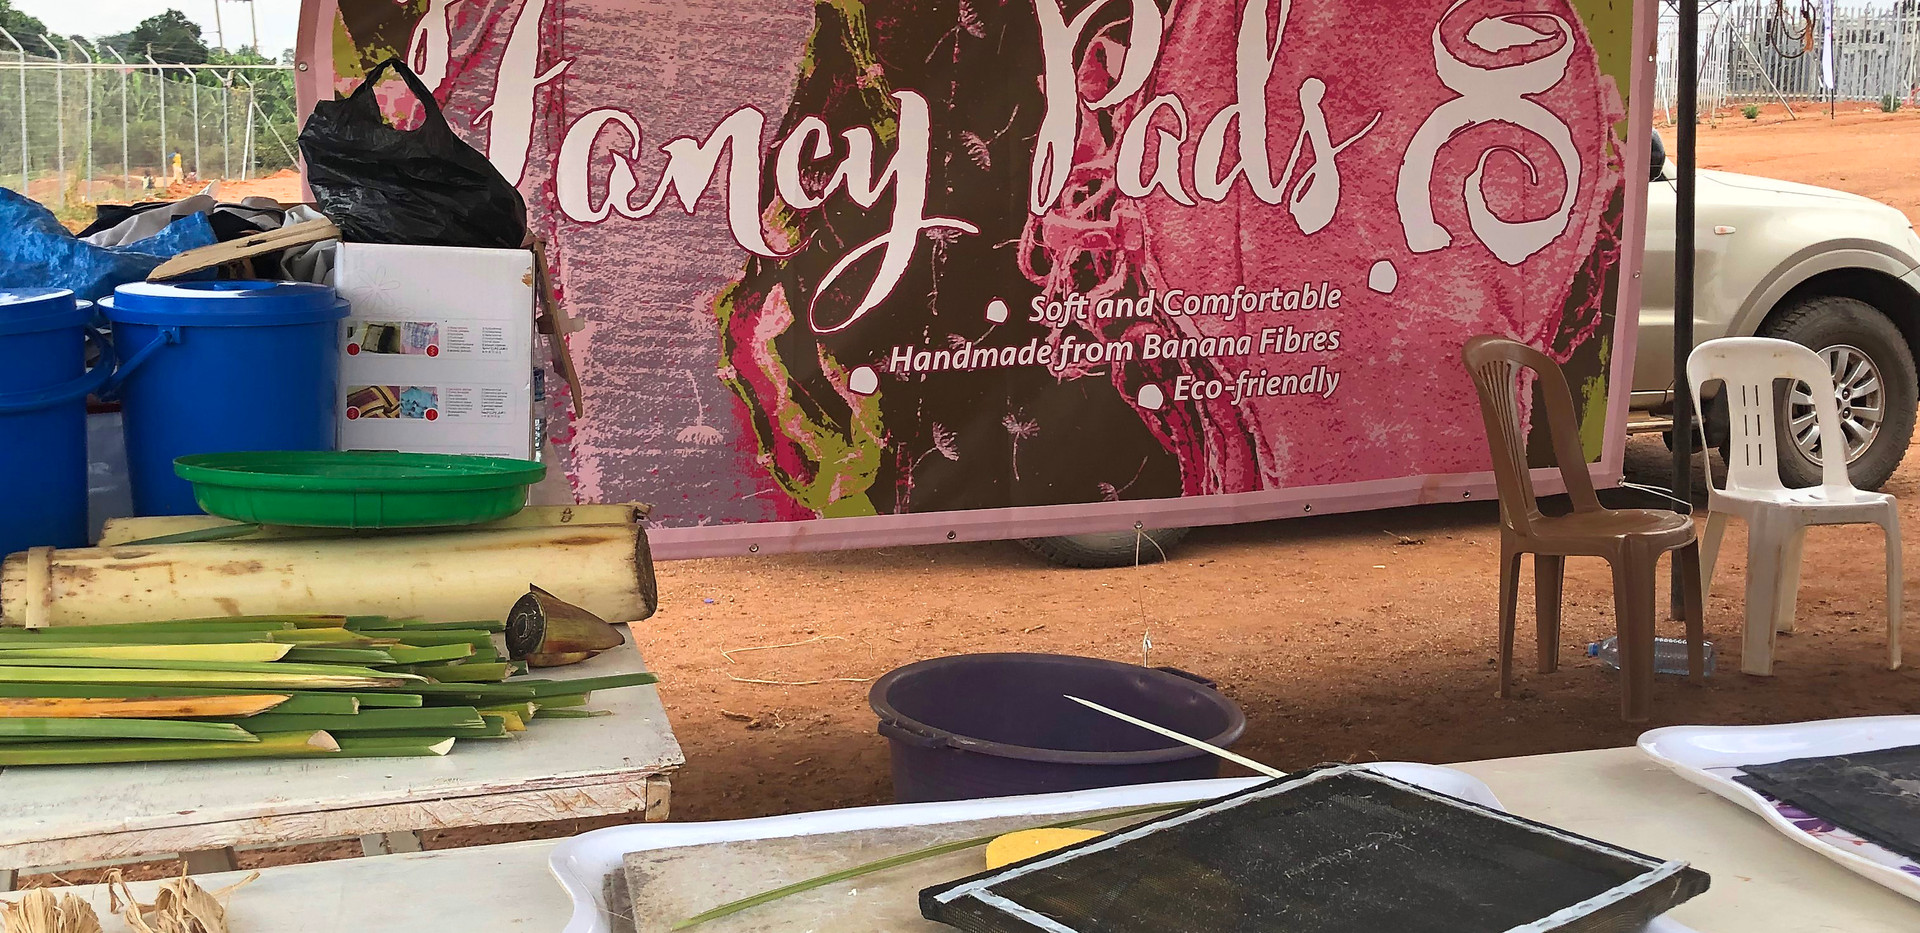 'Fancy Pads' tent in one of our mobile workshops.